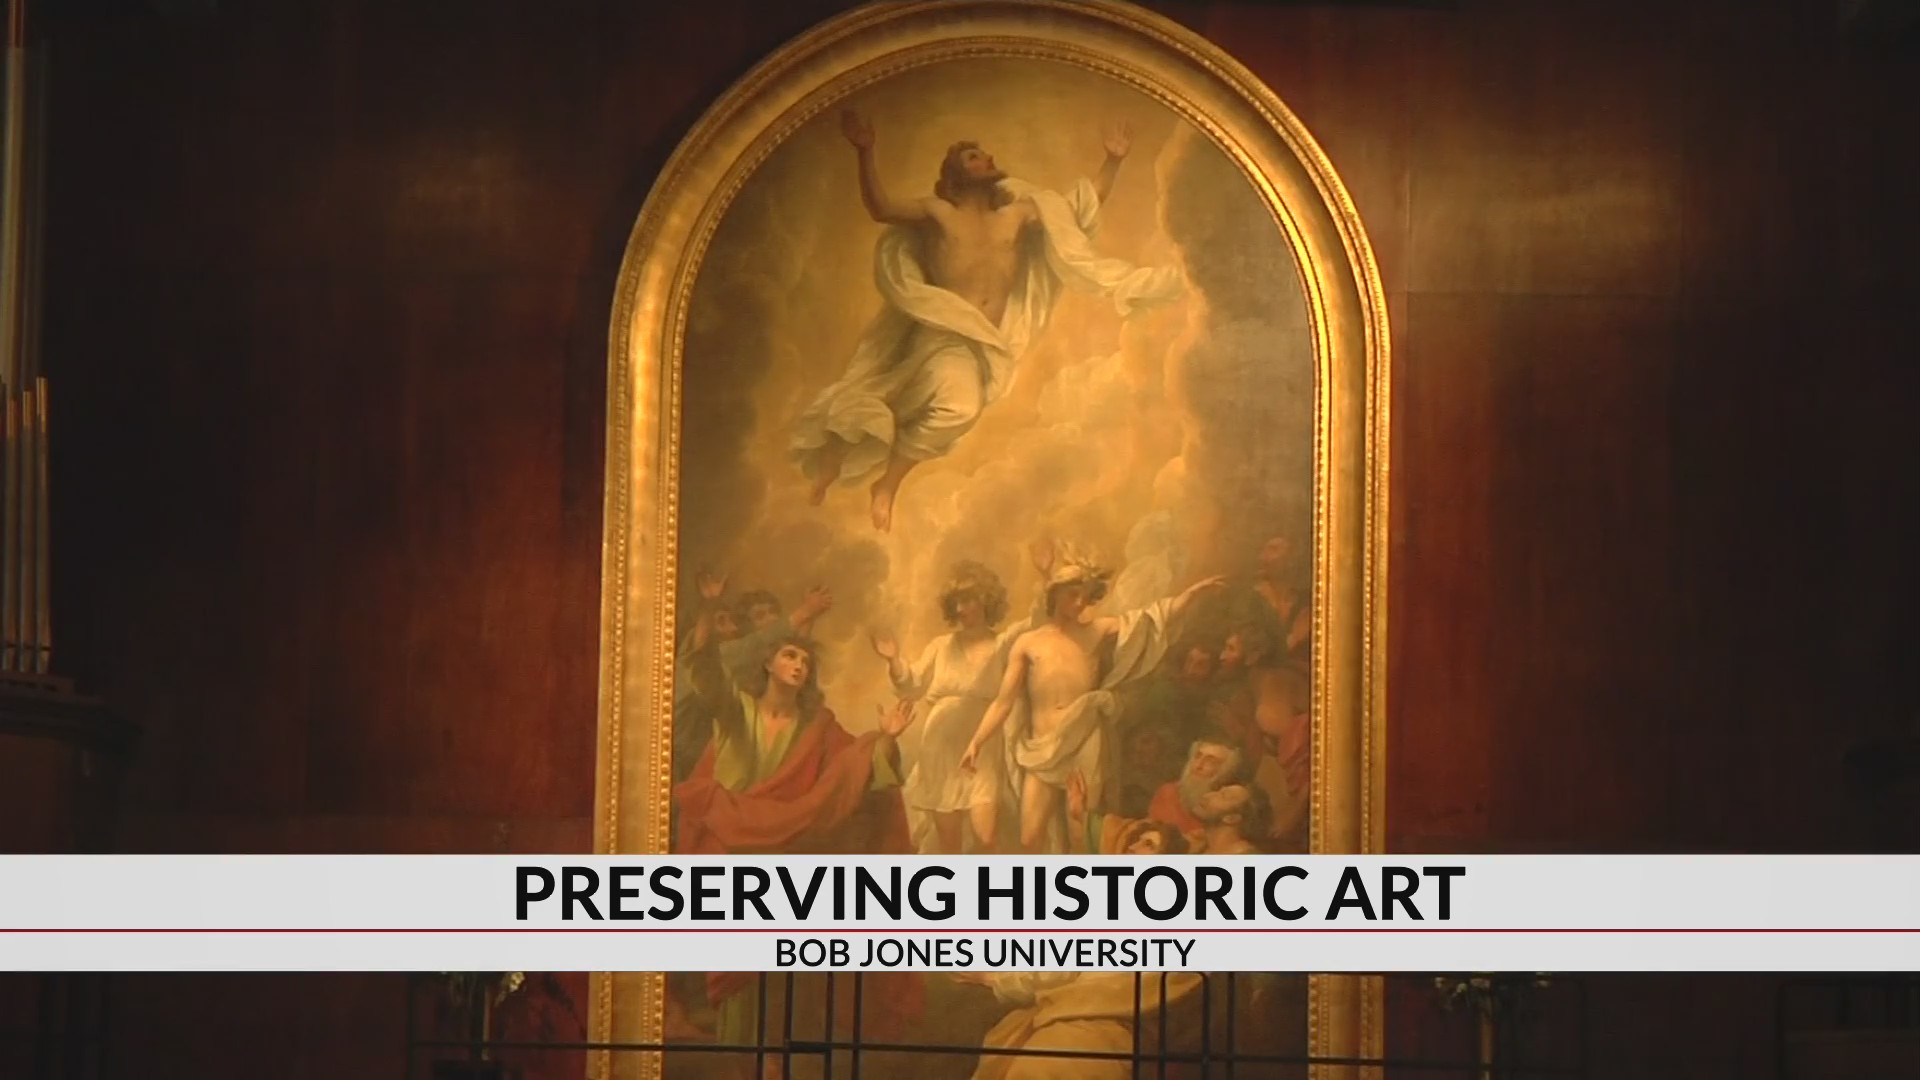 Notre Dame fire prompts artifact safety discussion at Bob Jones University